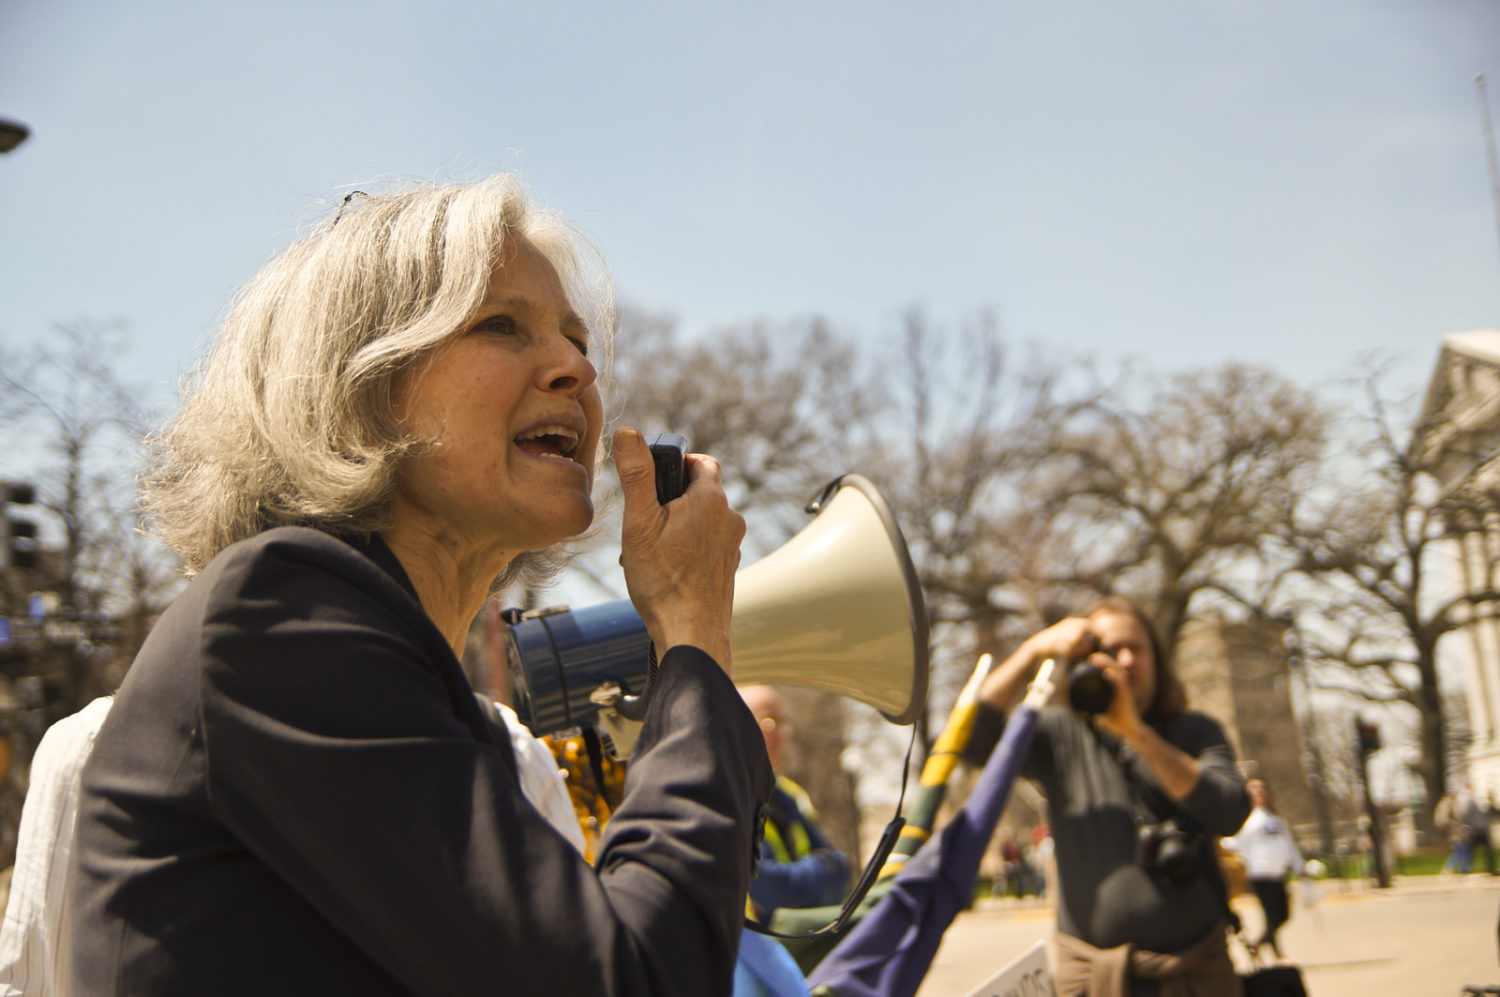 Green Party candidate Jill Stein addressing the march. Image by Flickr user Joe Brusky